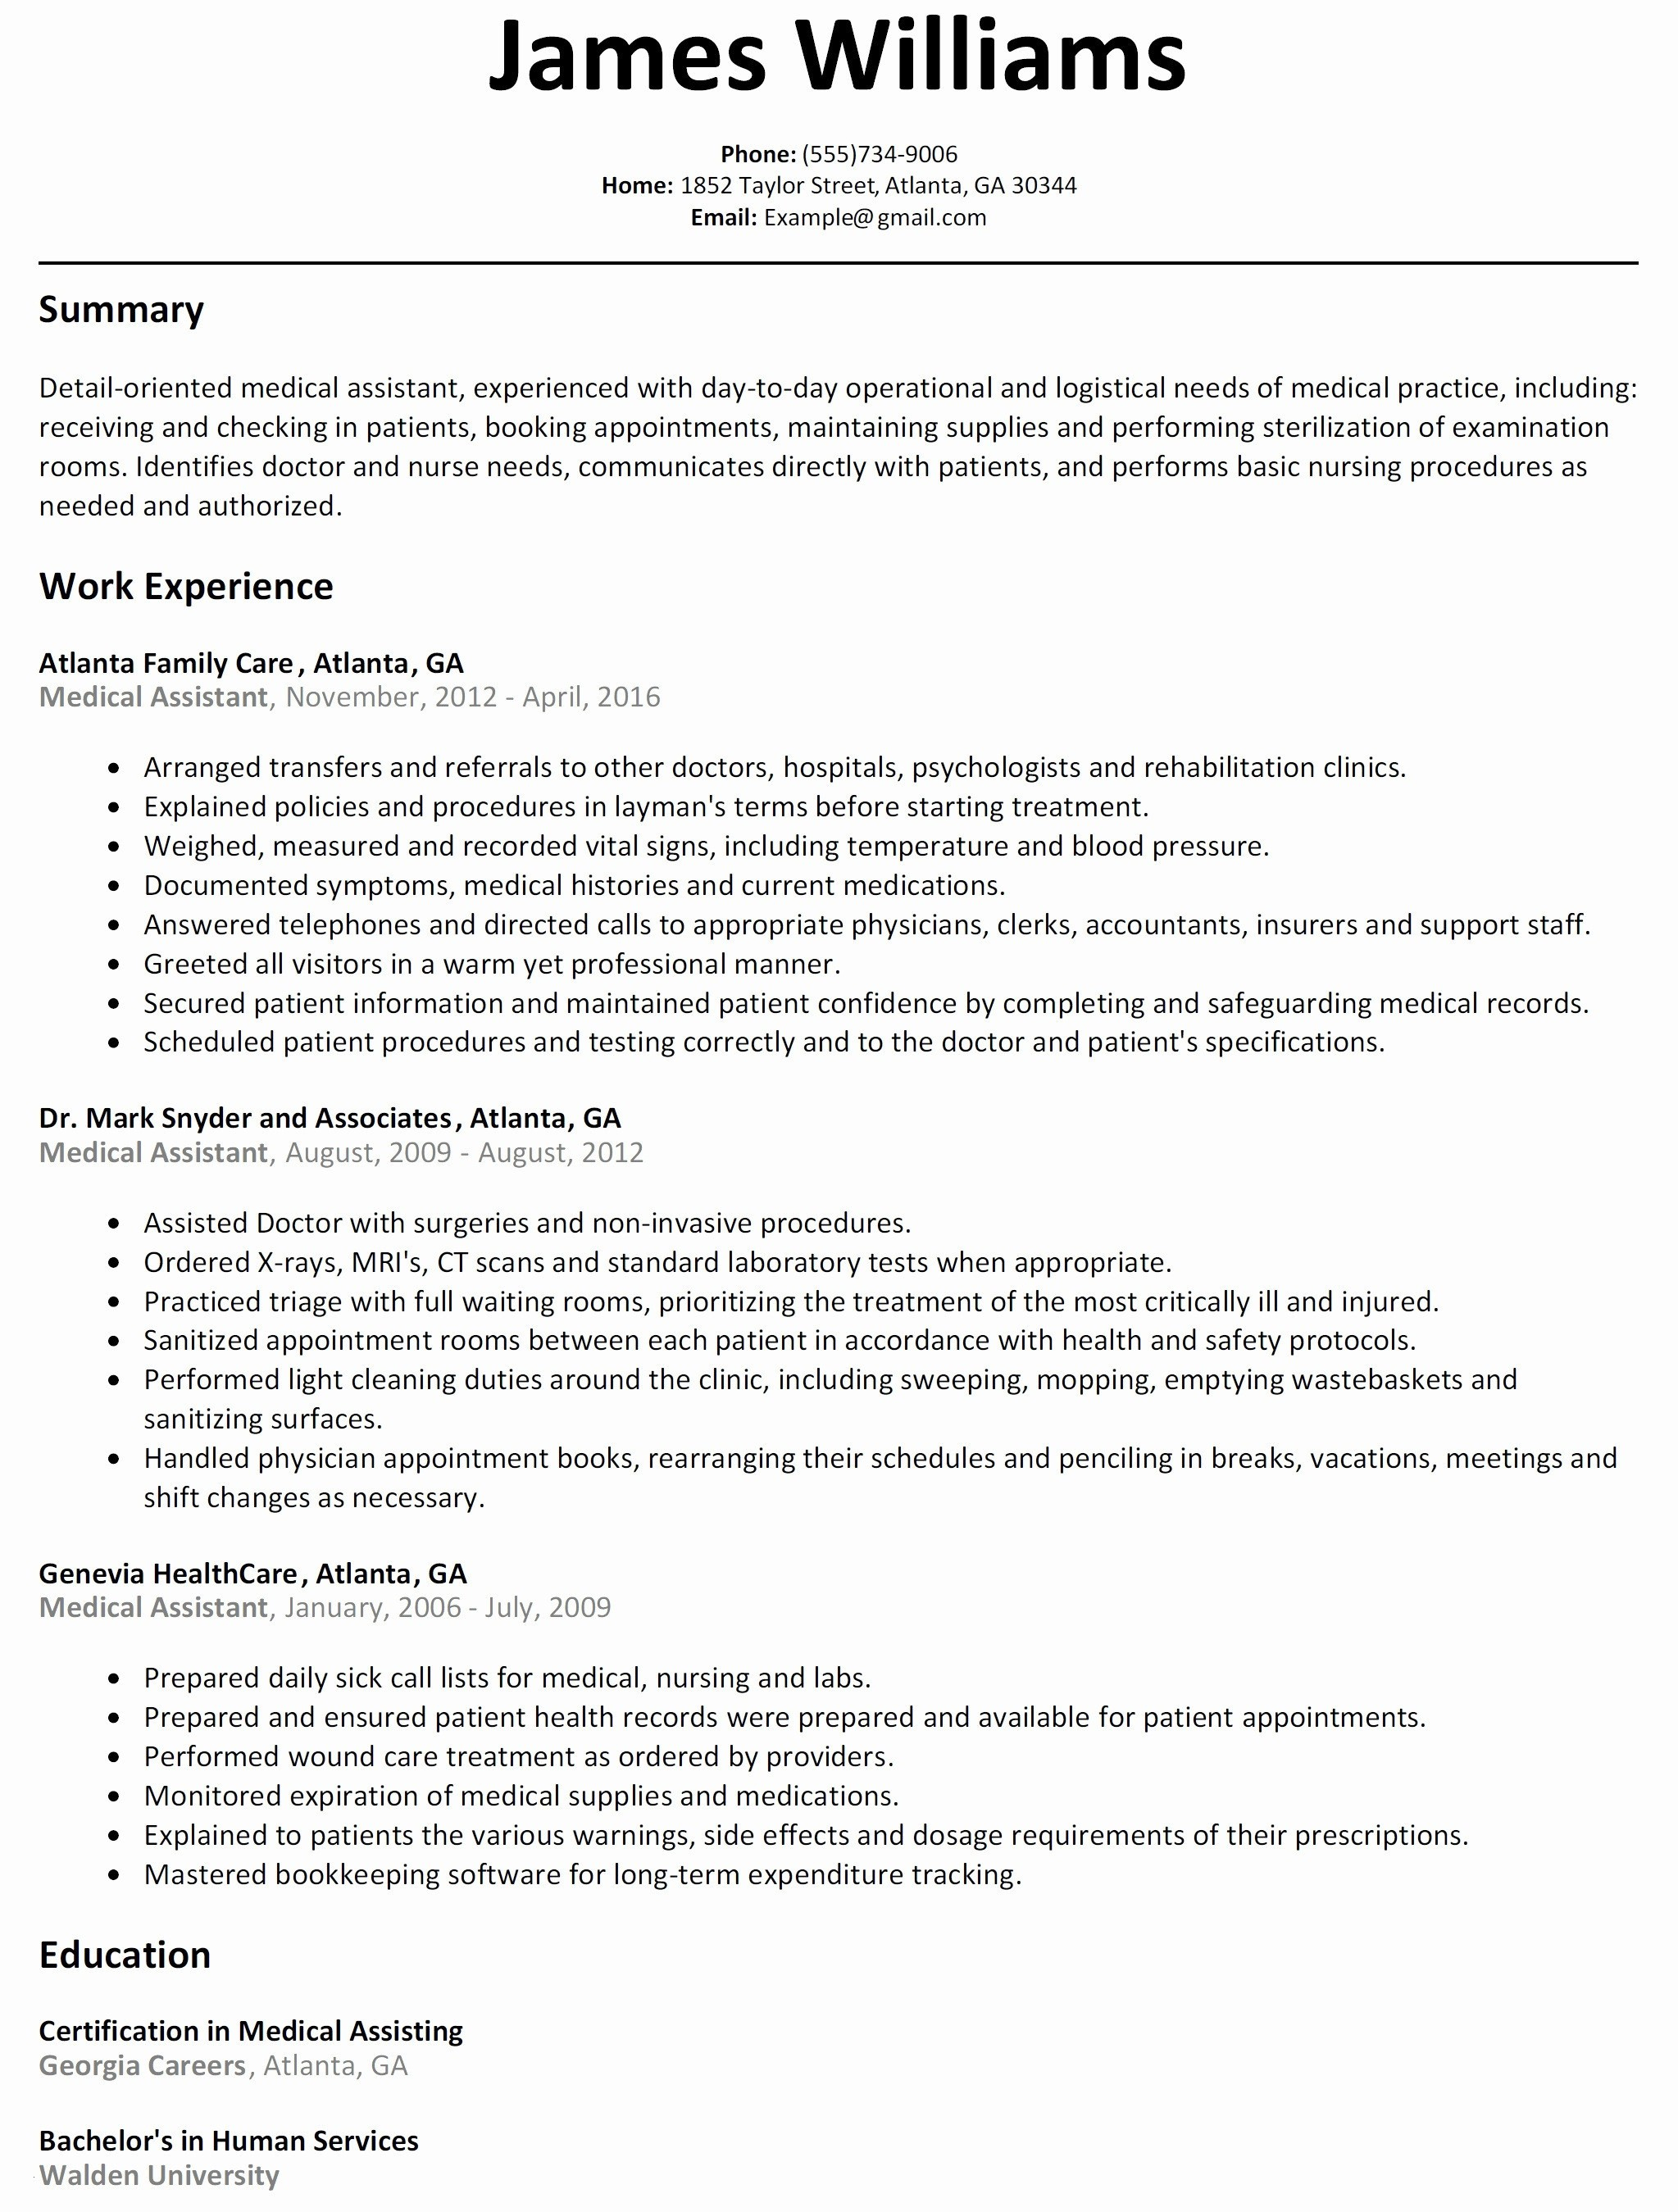 Teacher Resume Skills - 25 Lovely Teacher Resume Skills